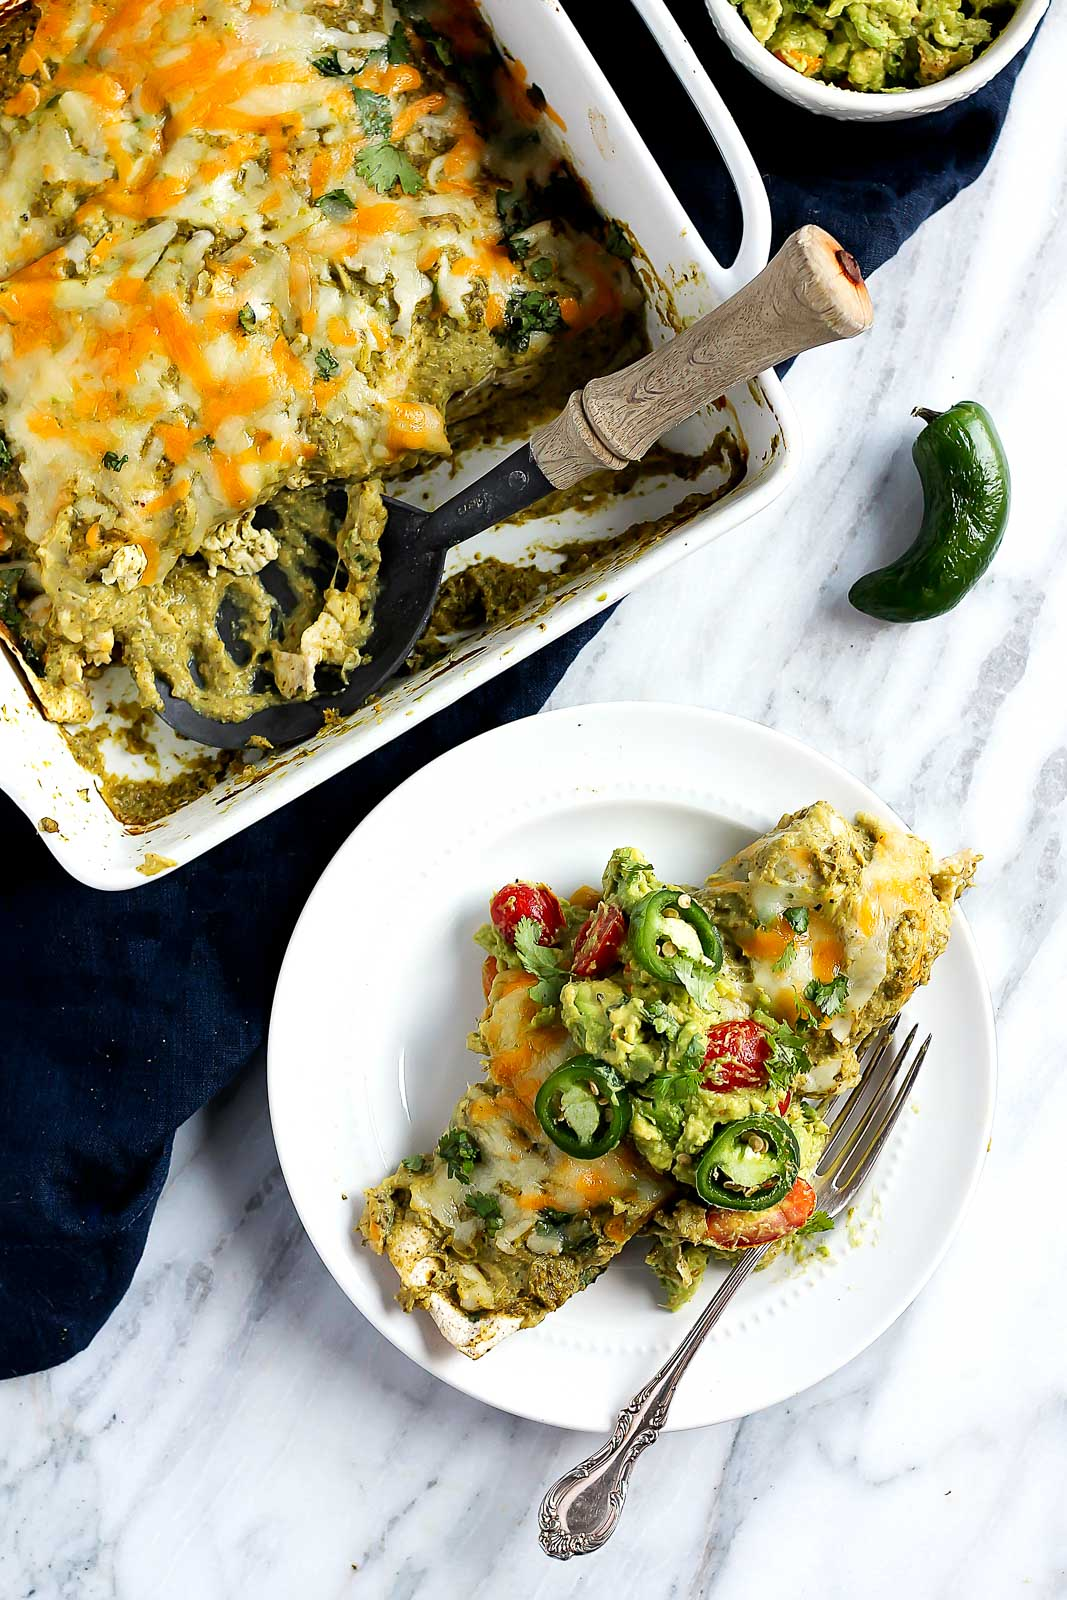 Healthy comfort food makeover! These small batch salsa verde chicken enchiladas will have you licking your plate clean. Double the recipe to serve a crowd!